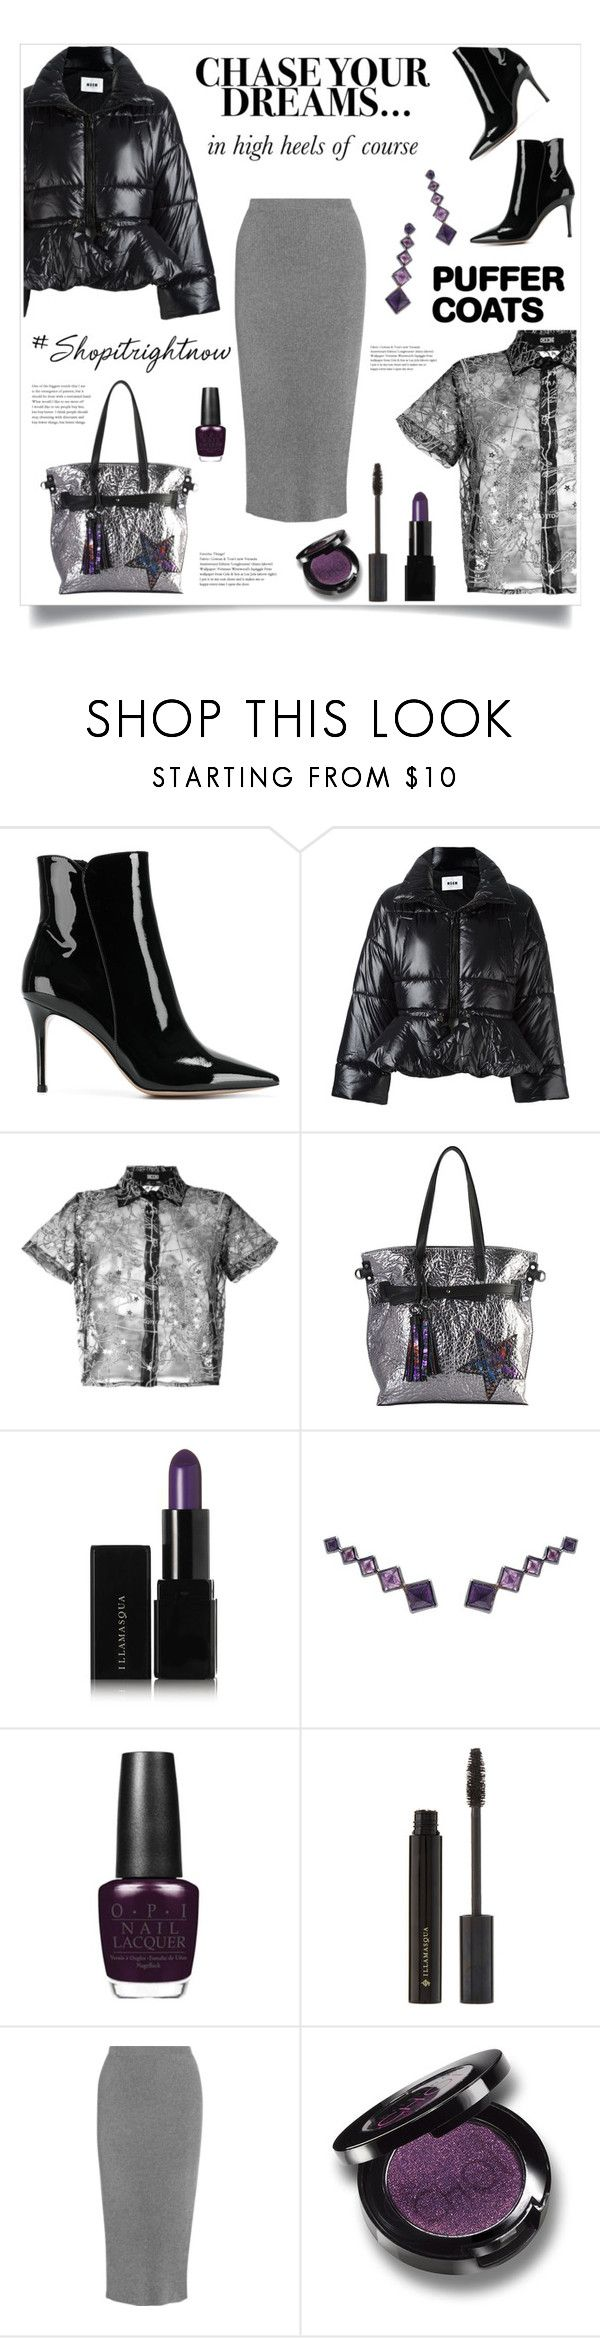 """""""Puffer Coat!"""" by diane1234 ❤ liked on Polyvore featuring Gianvito Rossi, MSGM, KTZ, Rimen & Co., Illamasqua, Lynn Ban, OPI, Thierry Mugler and Christina Choi Cosmetics"""